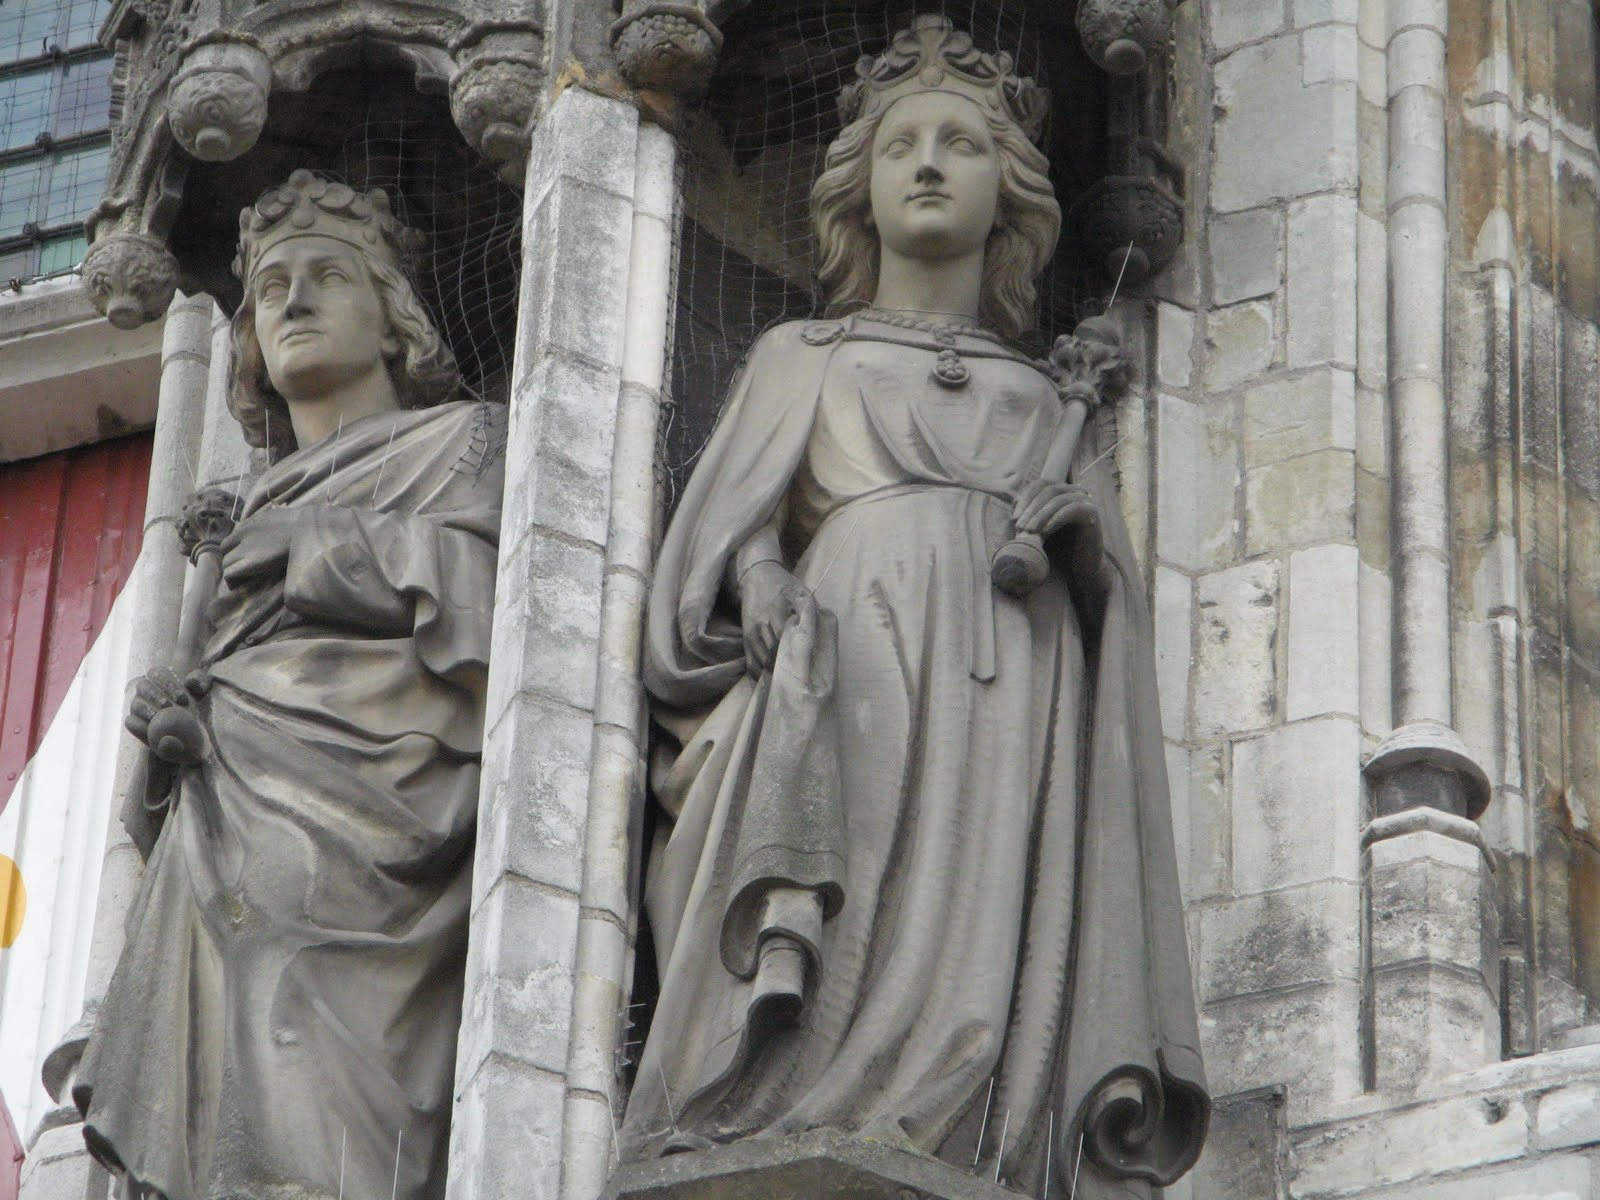 Zeeland, Netherlands, Counts and Countesses of Holland and Zeeland on the facade of the Town Hall in Middelburg